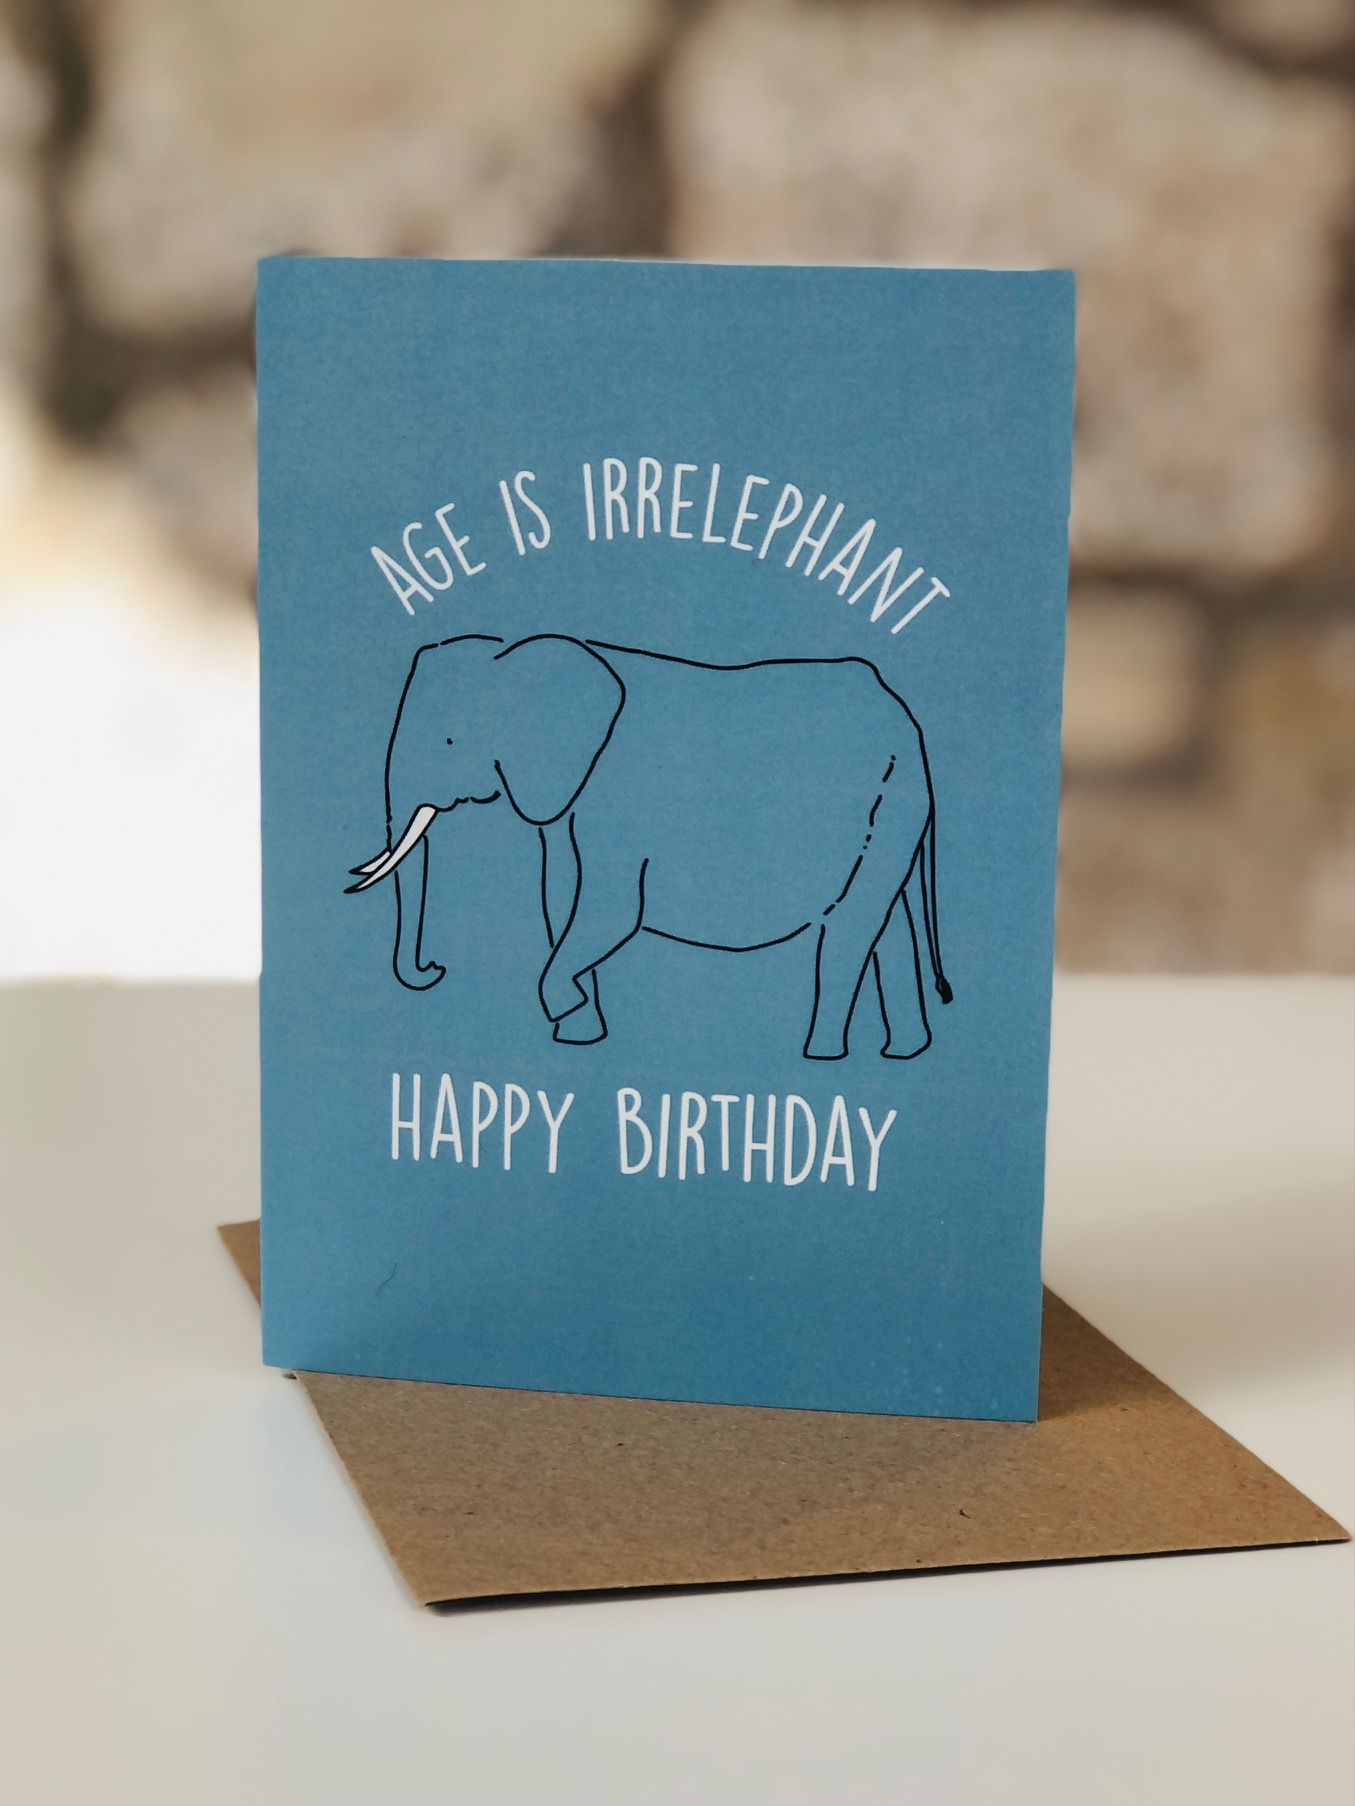 'Age is Irrelephant' Greetings Card by Emma